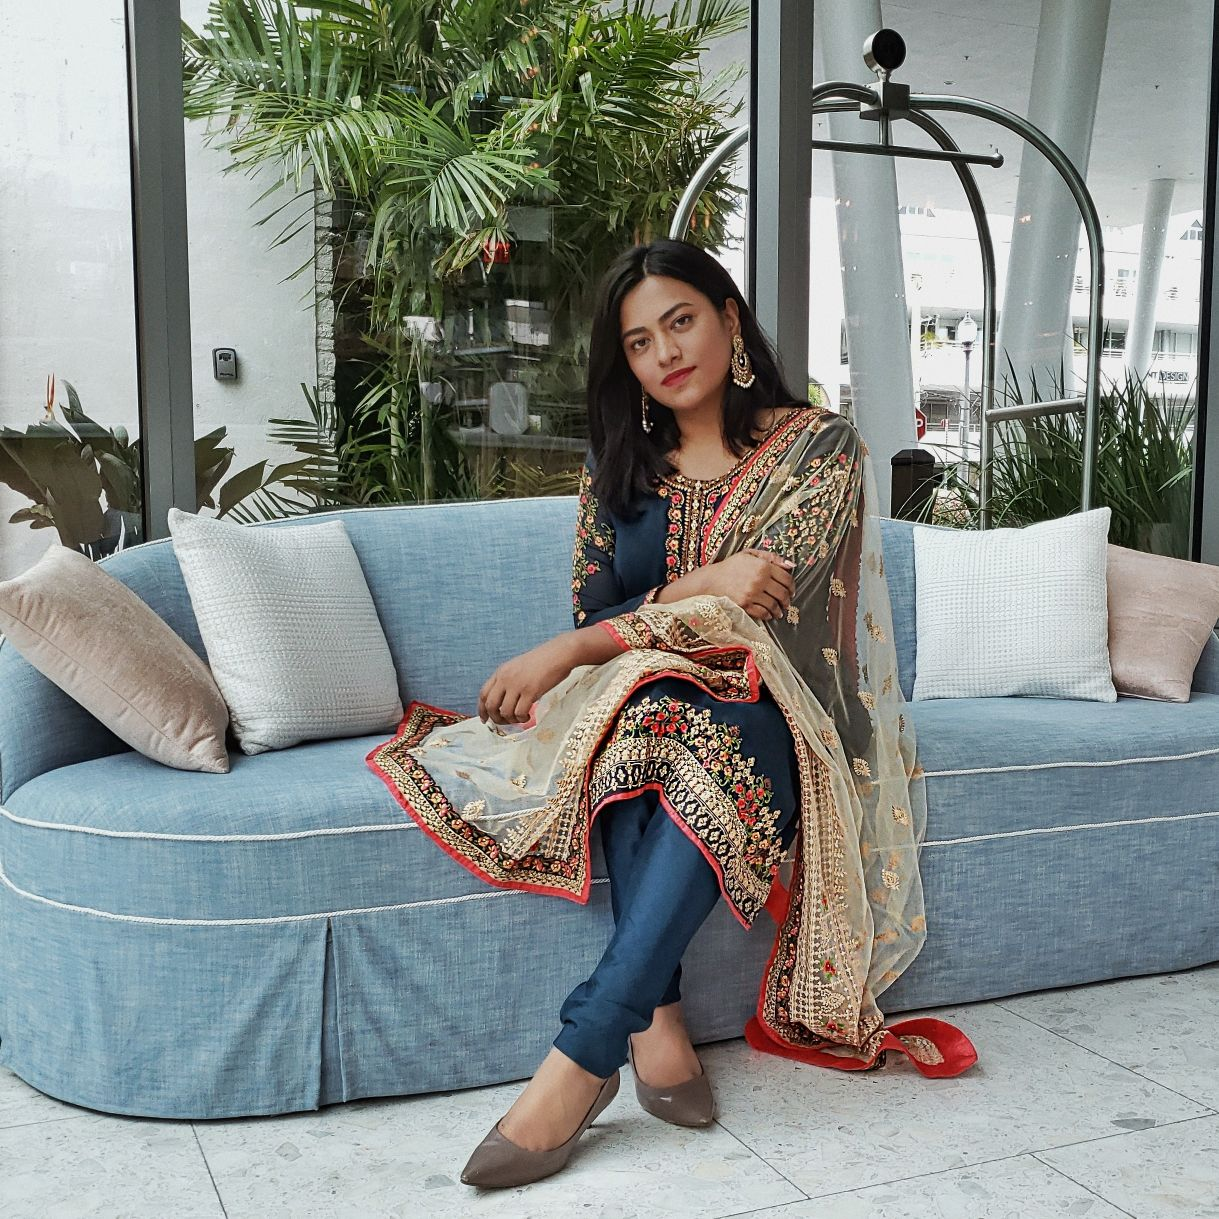 Miami Fashionista Indian Bangladesh Style Blogger Afroza Khan